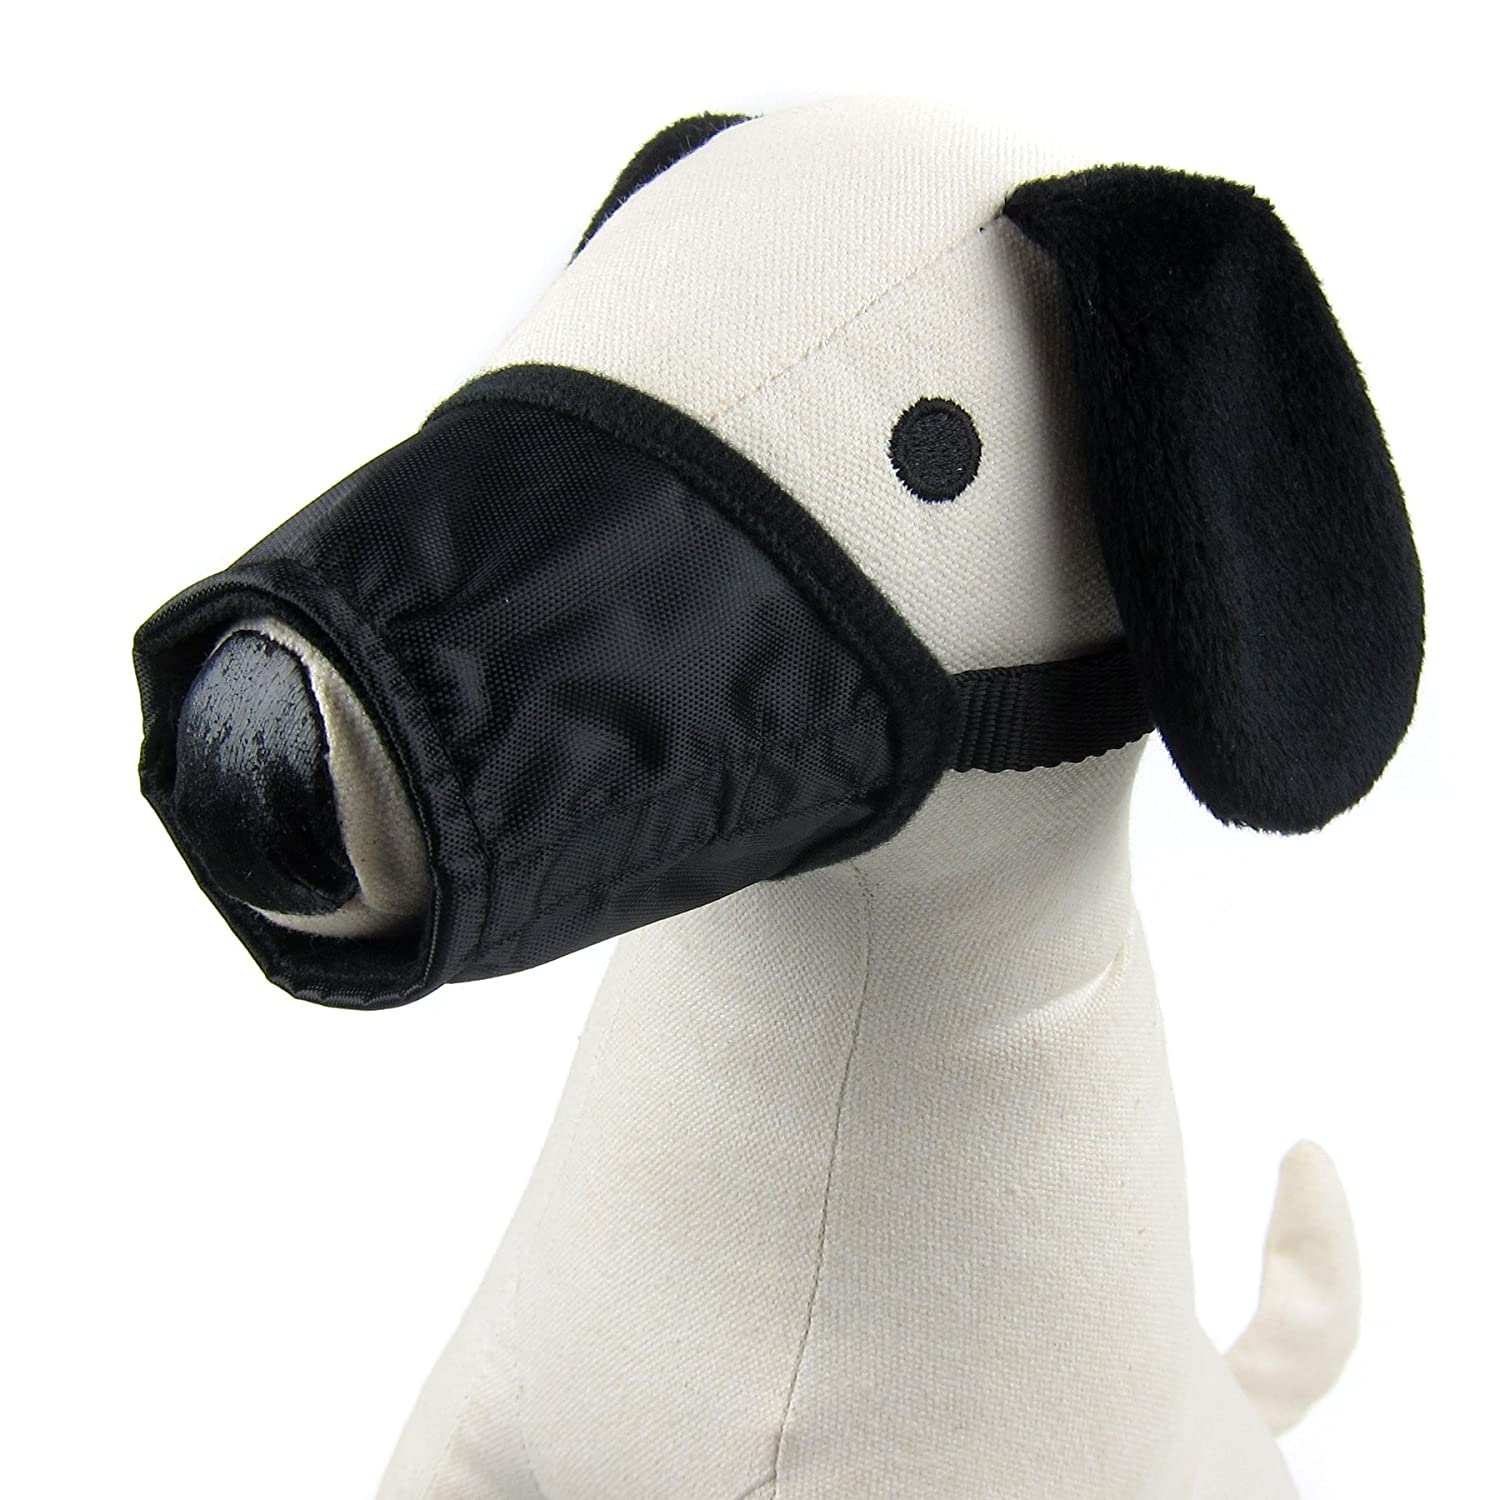 Black XL Black XL Alfie Pet by Petoga Couture Calan Adjustable Quick Fit Nylon Muzzle color  Black, Size  XL